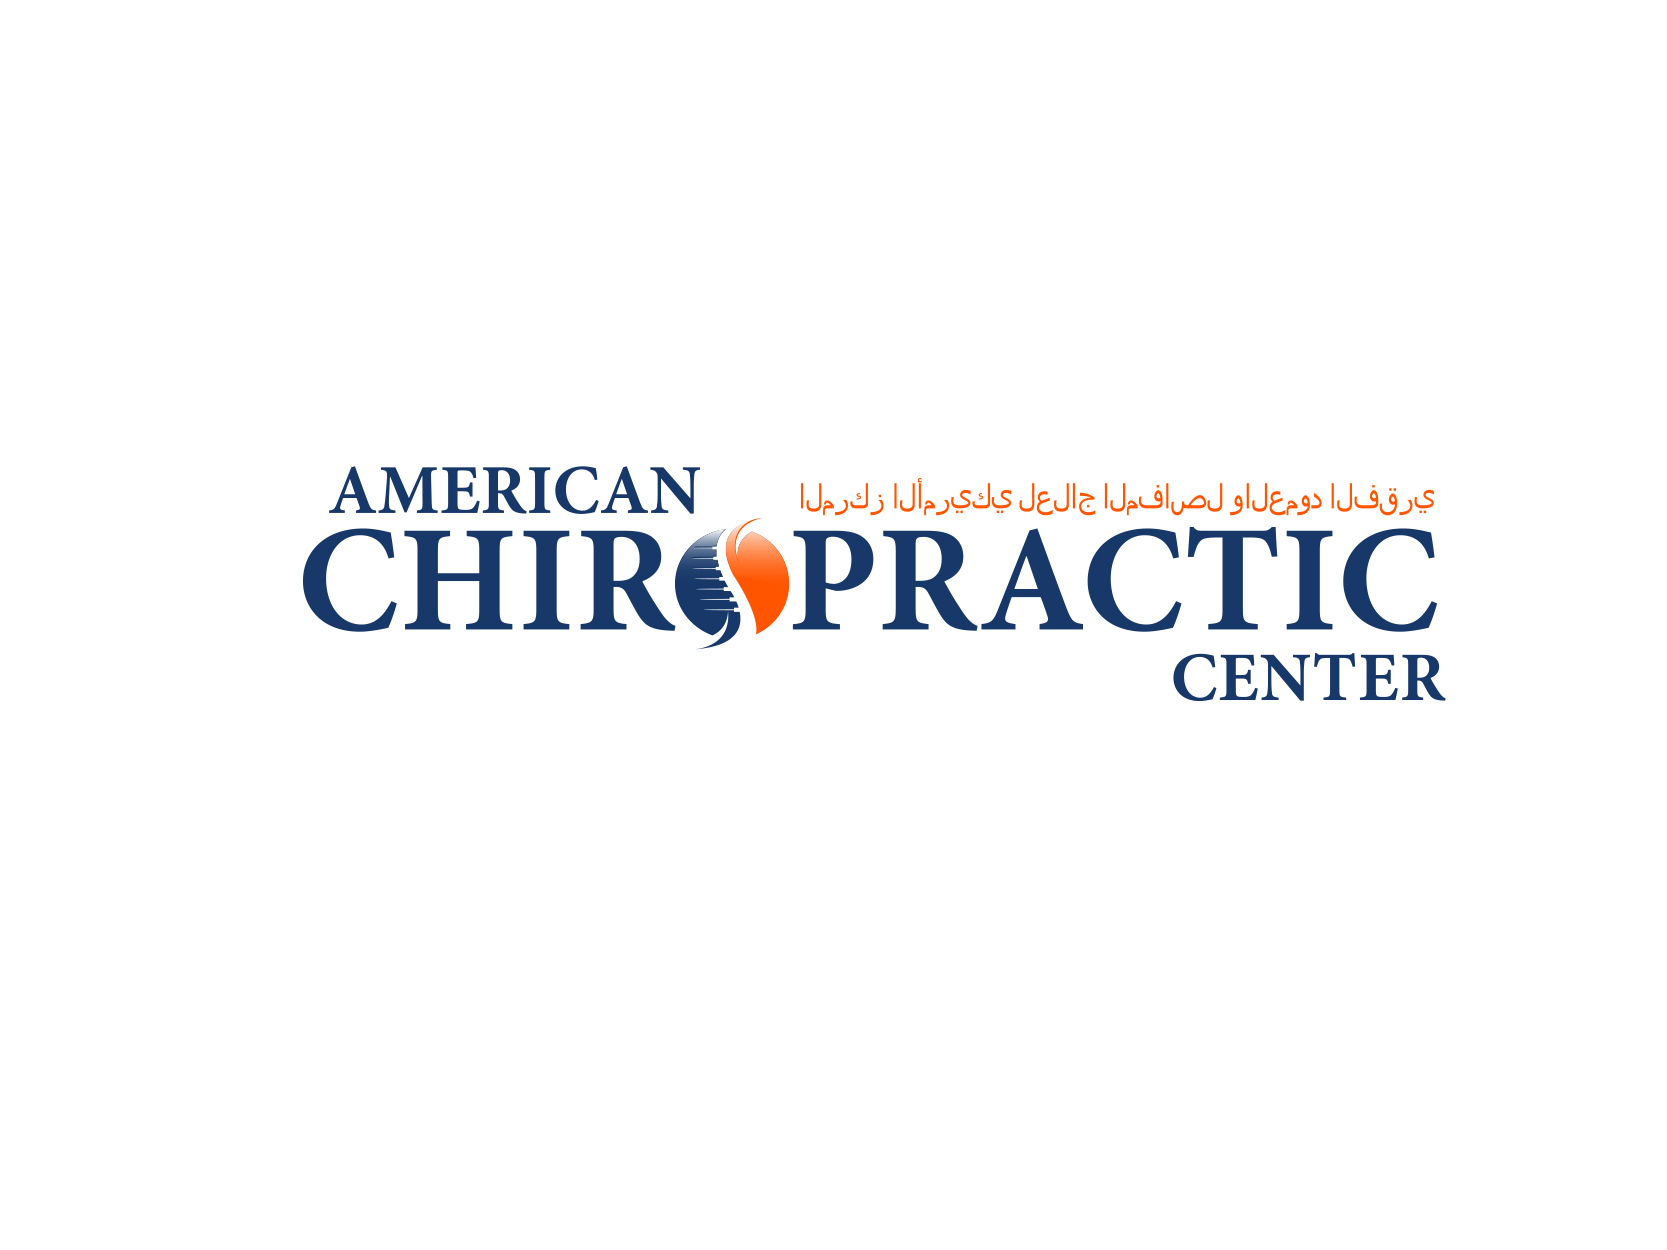 Logo Design by ddamian_dd - Entry No. 85 in the Logo Design Contest Logo Design for American Chiropractic Center.